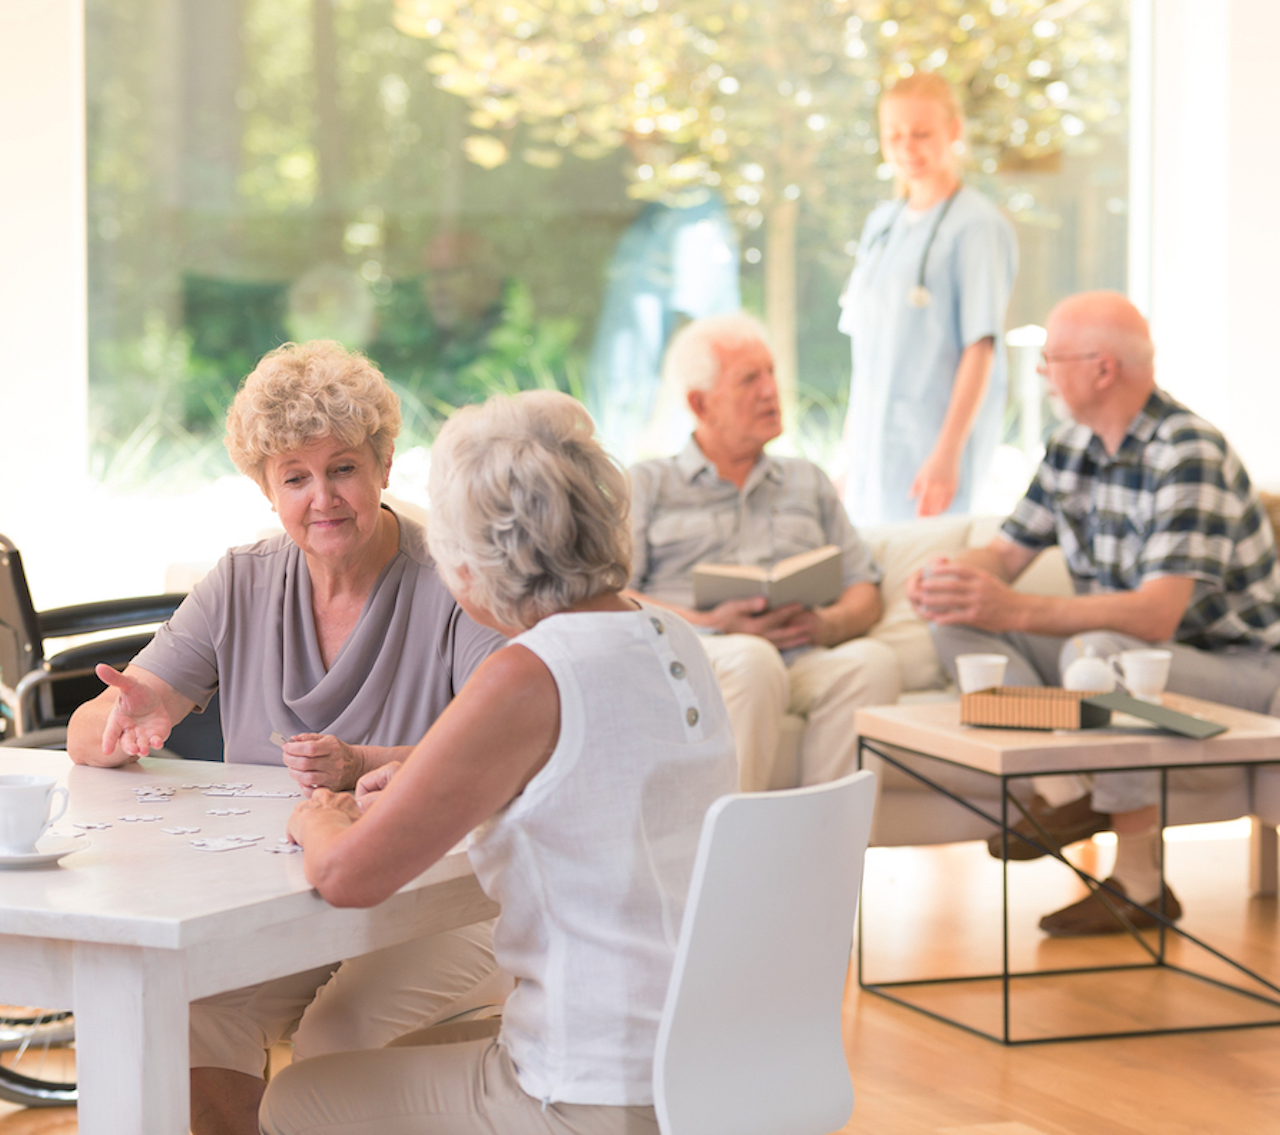 8 Tips for Moving to an Assisted Living Community